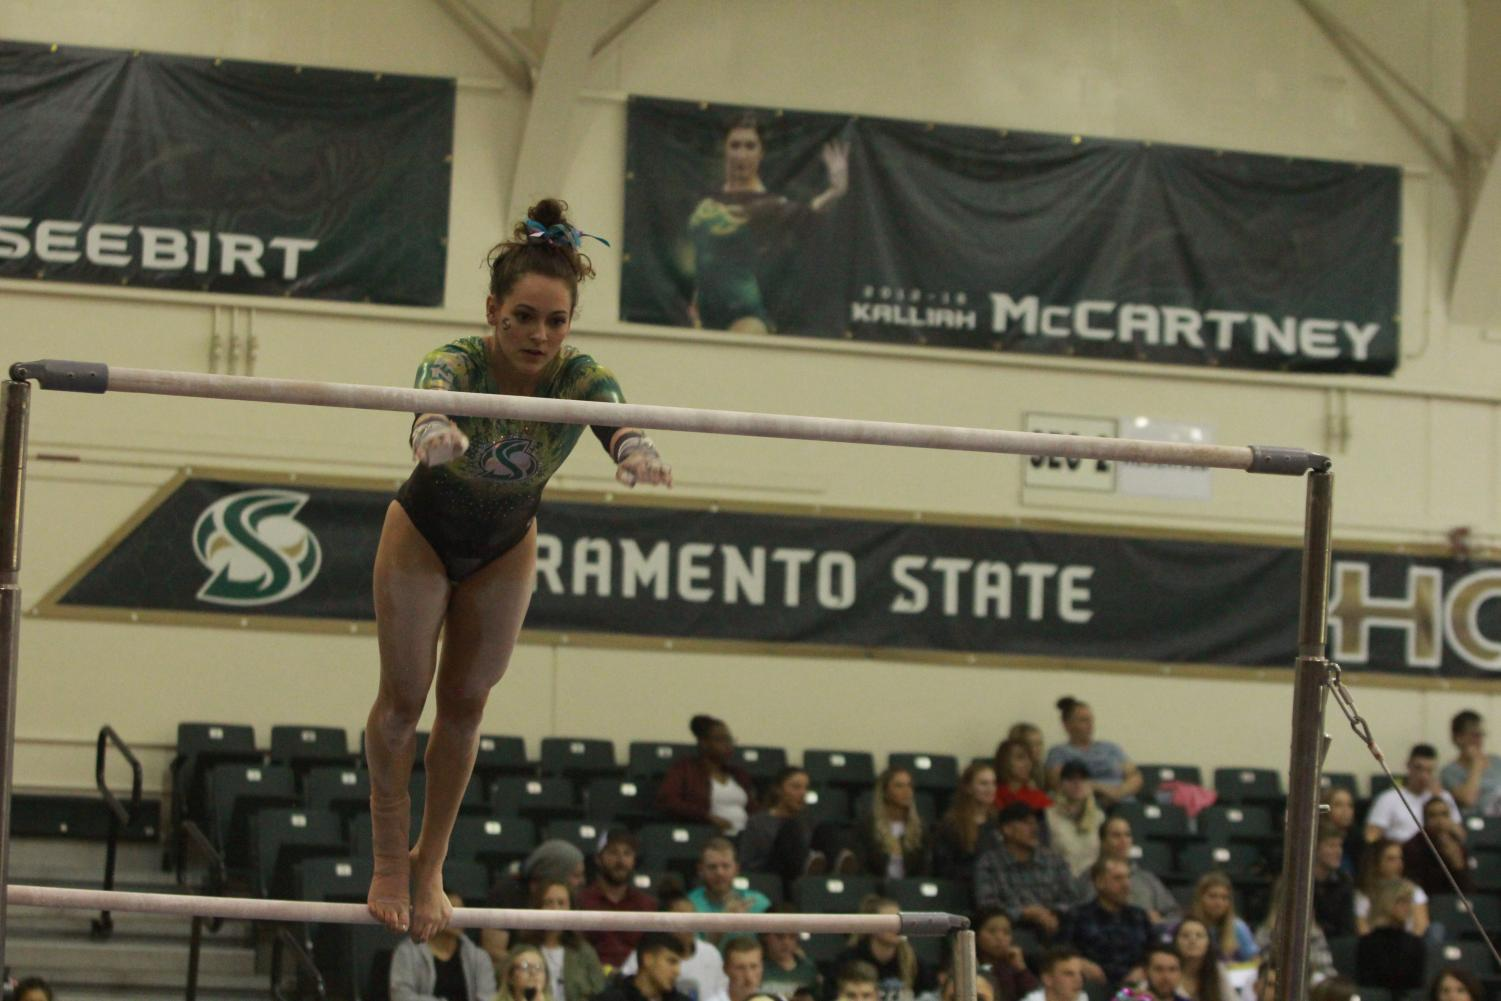 Sacramento State senior gymnast Annie Juarez competes on the uneven bars at the Nest on Friday, March 9, 2018. Juarez was one of four Hornets to qualify for an NCAA Regional.